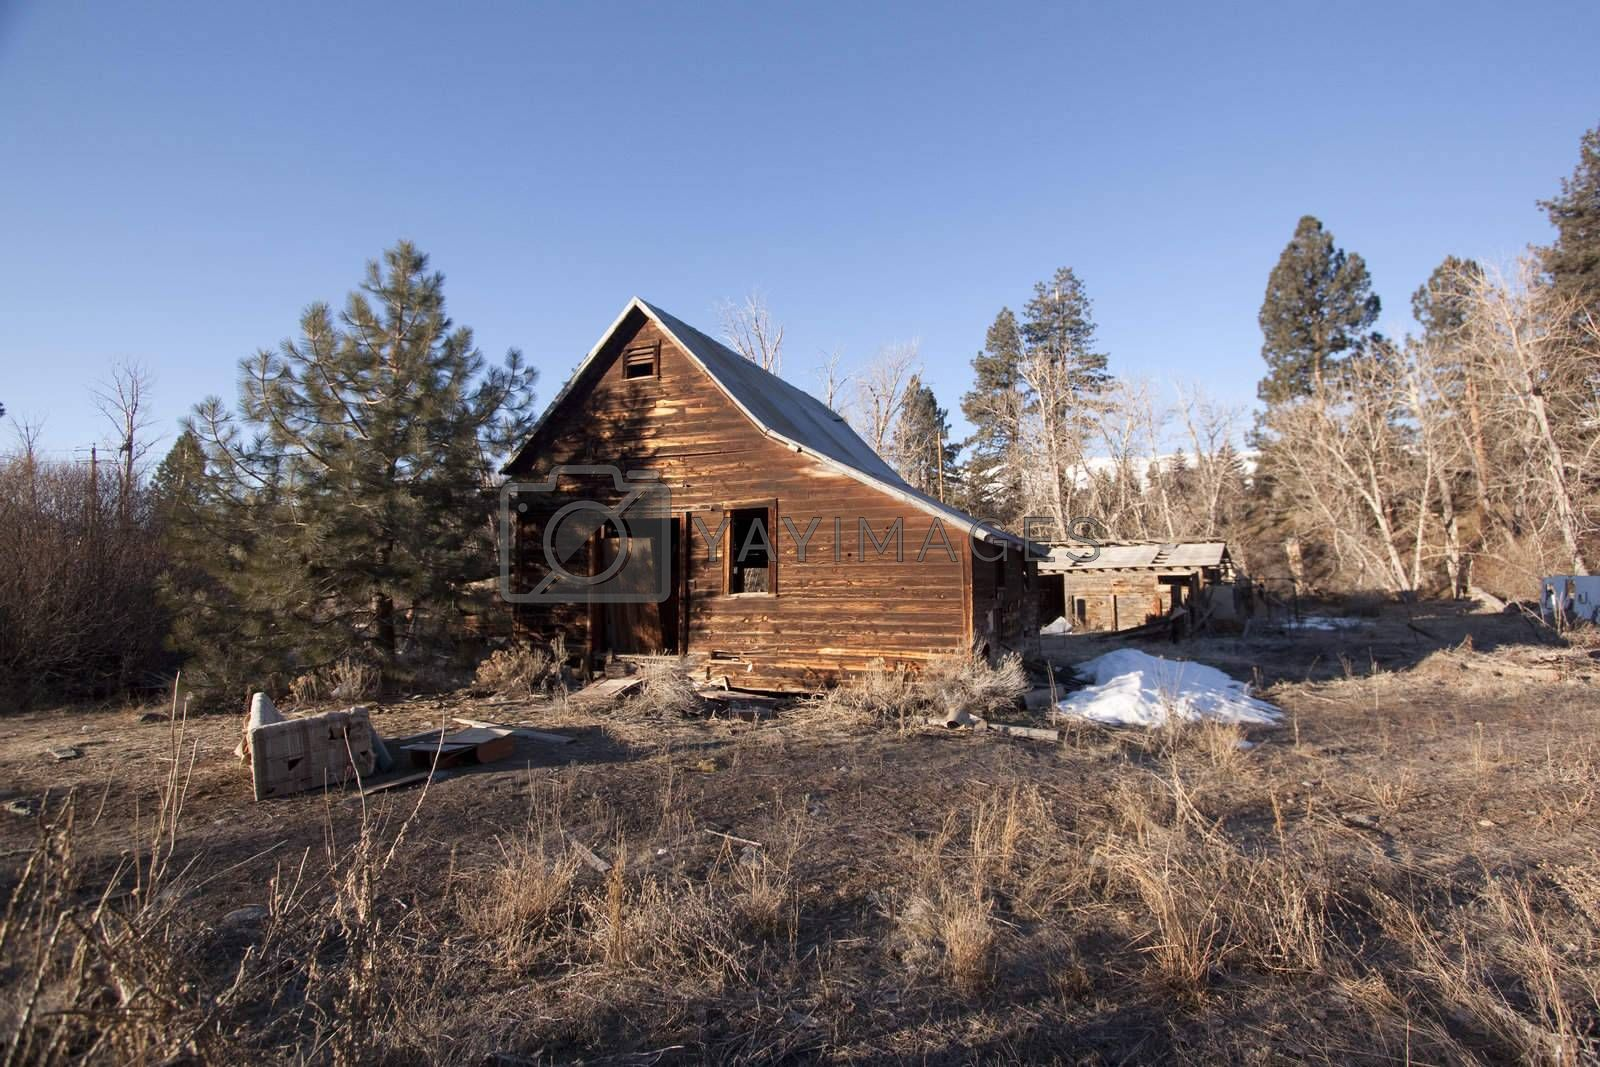 an old abandoned barn or cabin in the forest